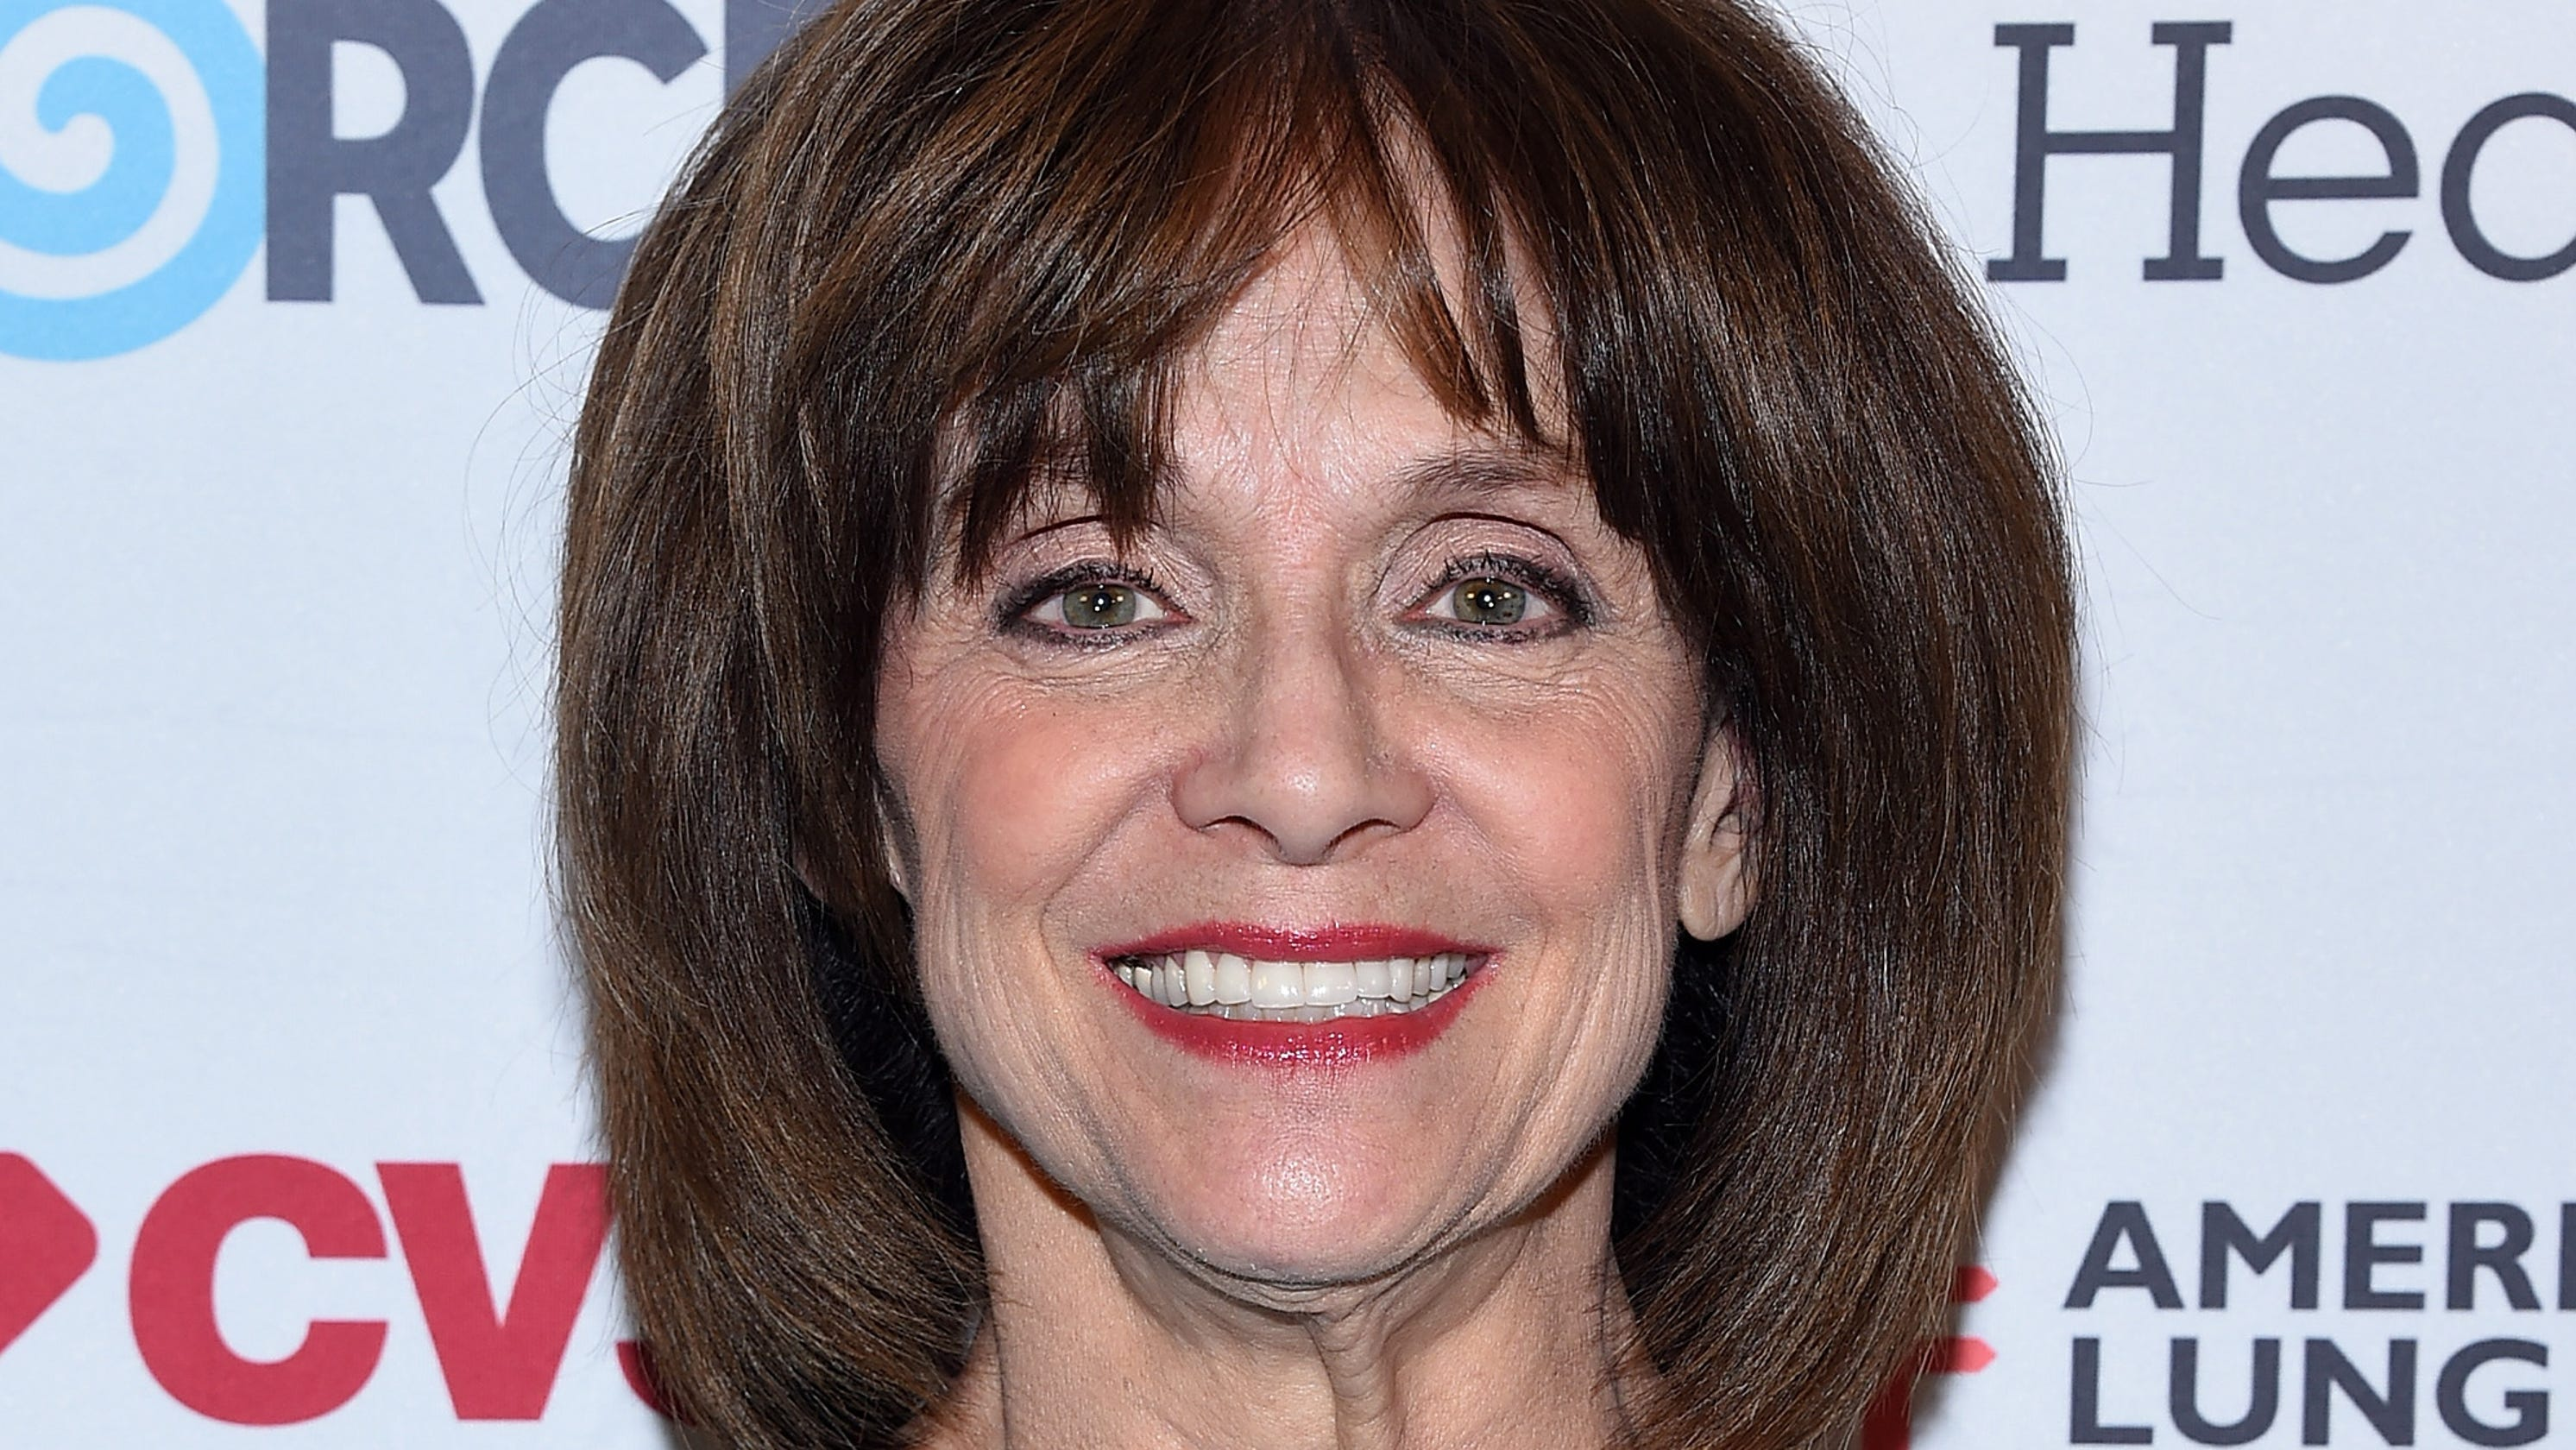 GoFundMe created to ease Valerie Harper's 'unrelenting medical costs' amid cancer fight